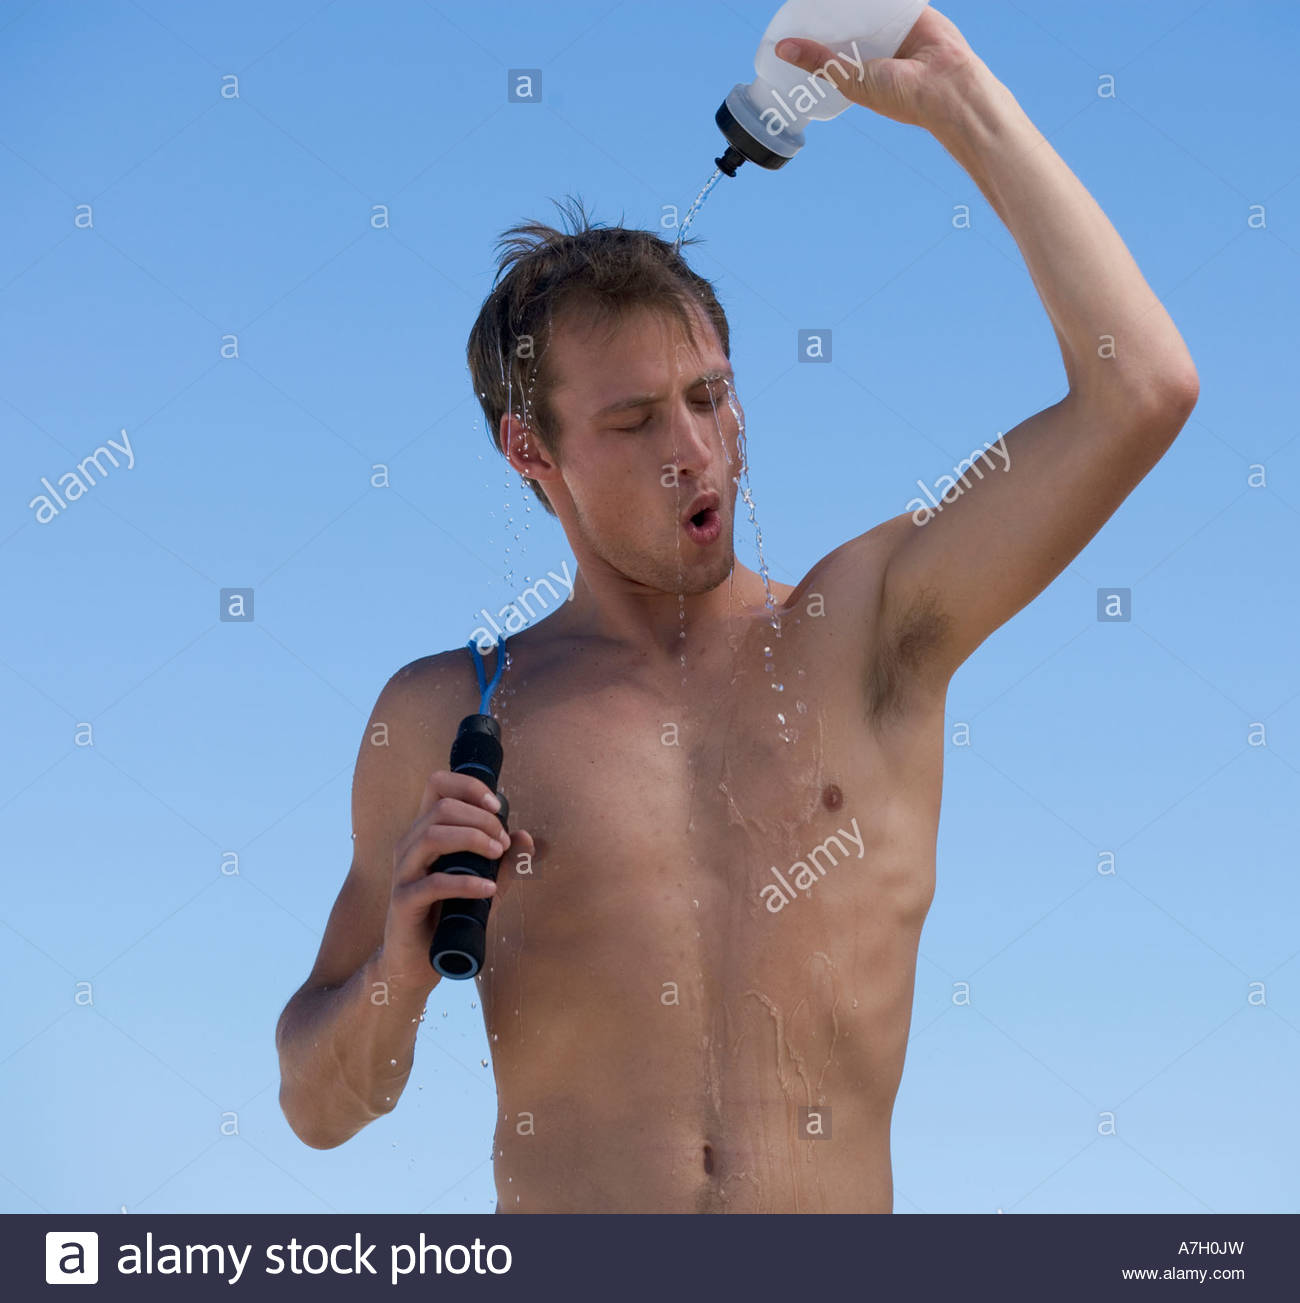 A young man cooling off after exercising - Stock Image